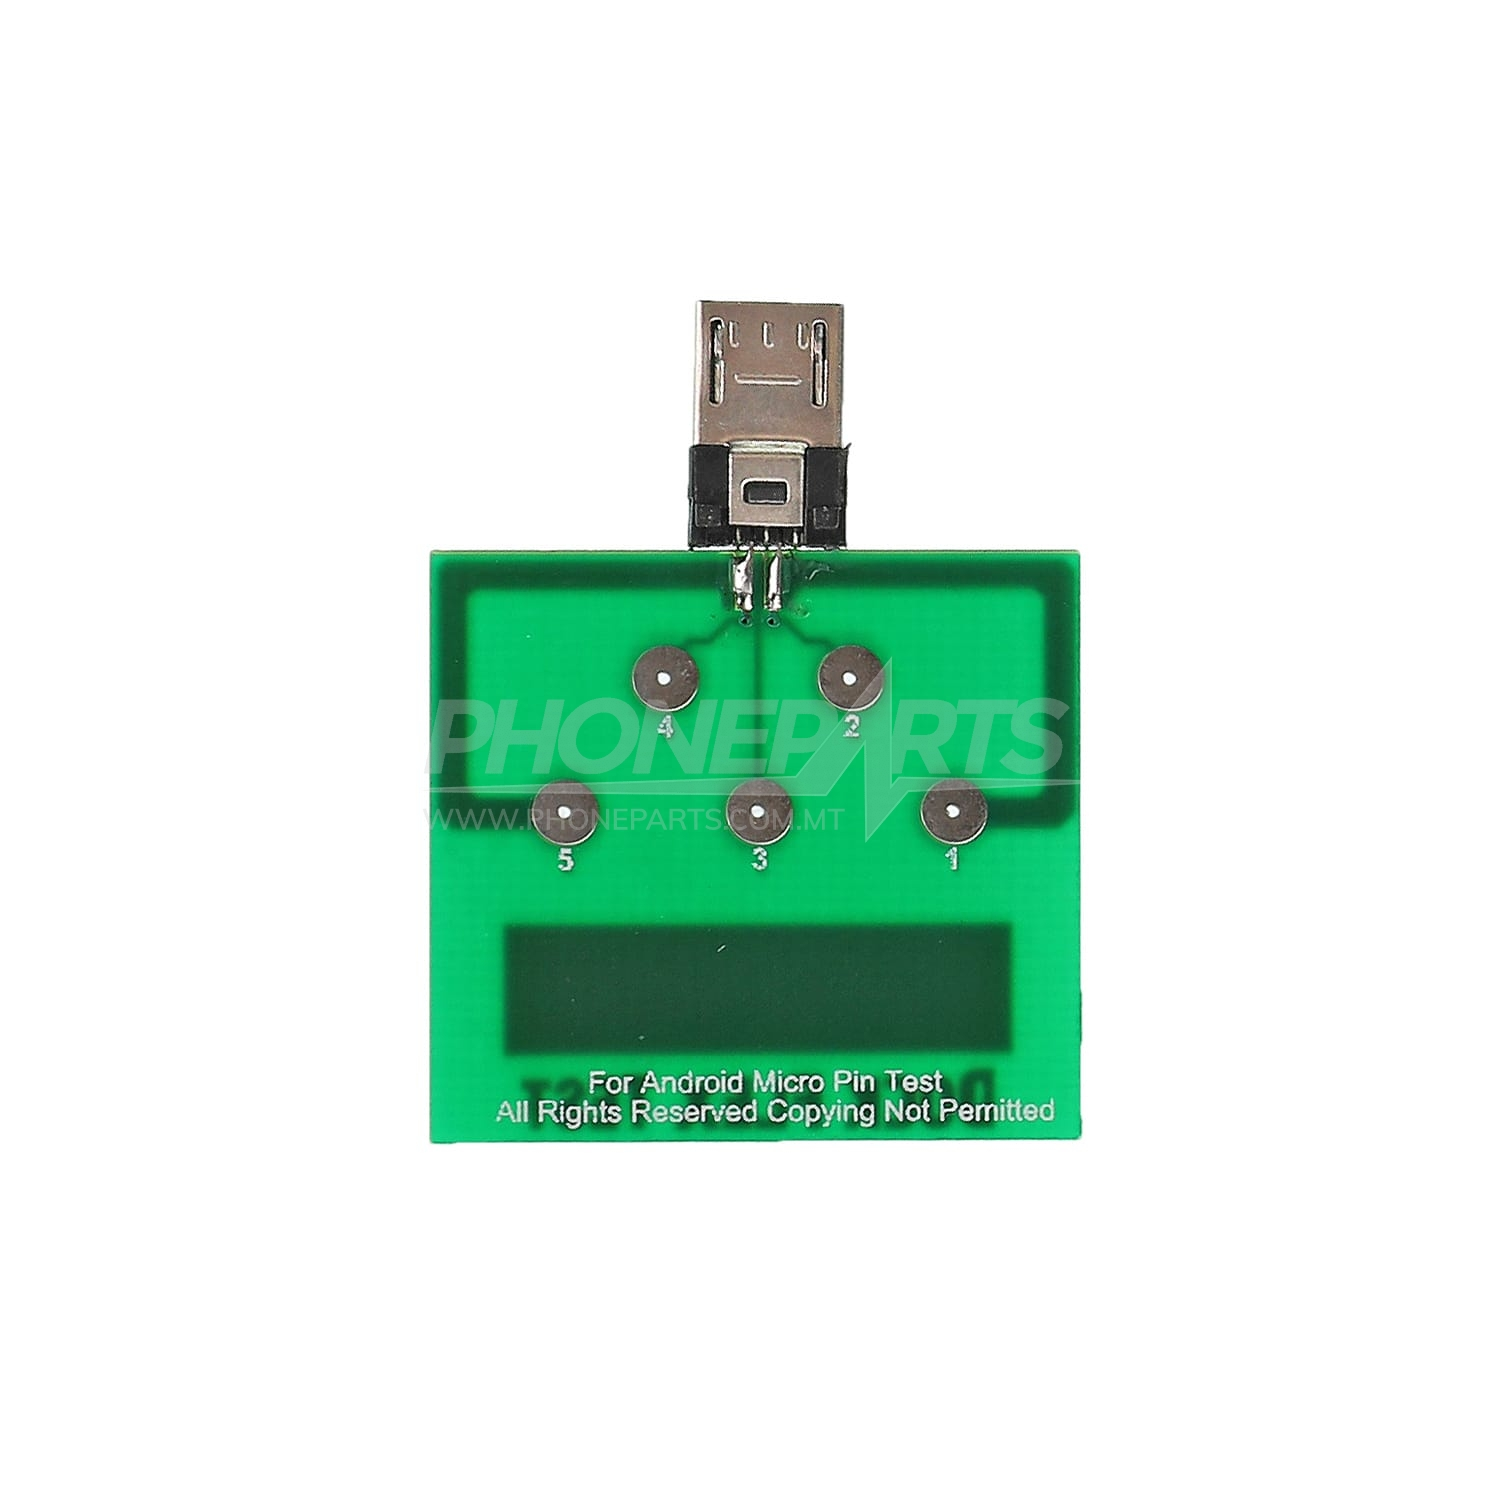 Microusb Usb Dock Pin Test Board Phoneparts Carger Samsung Galaxy Charger Android I9000 I 9000 Micro Smartphone Smart Phone Young V J1 J2 J3 J5 Prev